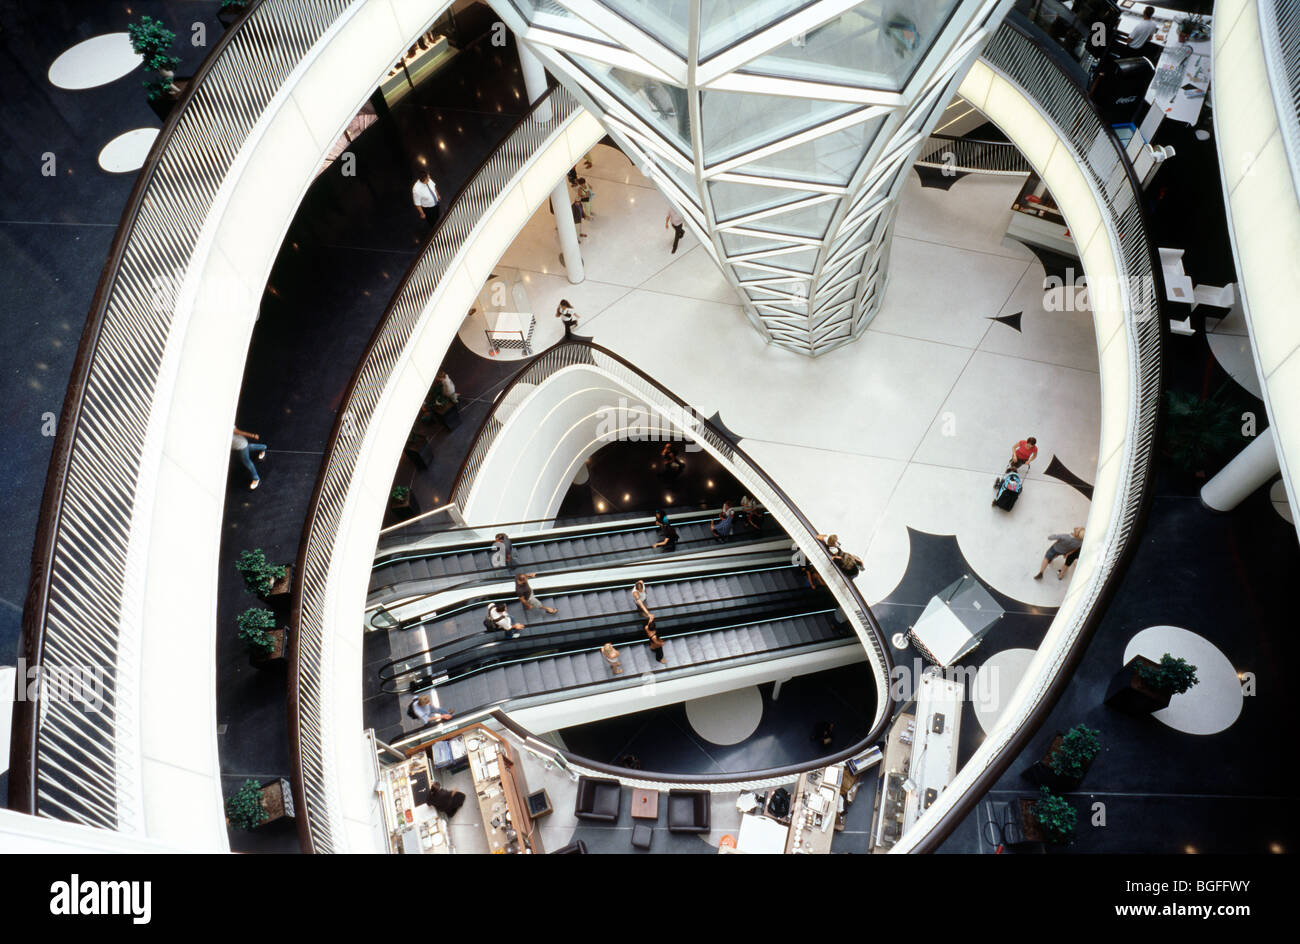 Interior view of MyZeil shopping mall as part of the Palais Quartier in the German city of Frankfurt. - Stock Image